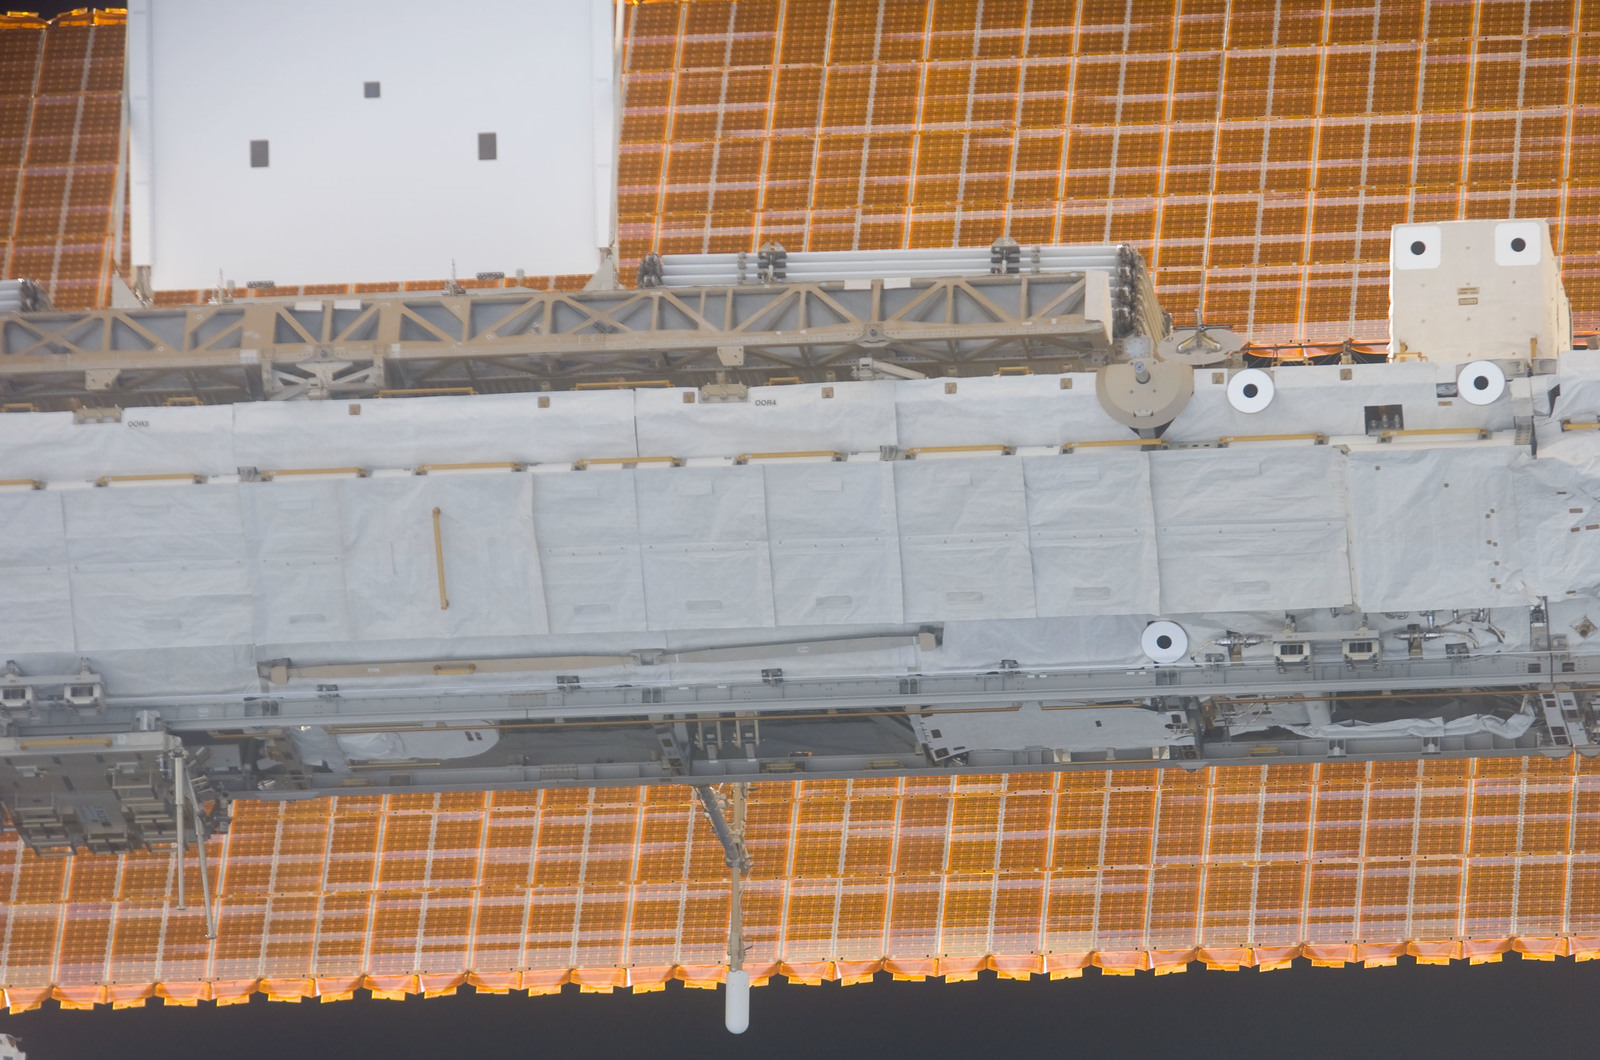 S116E05685 - STS-116 - Approach view of the P1 Truss